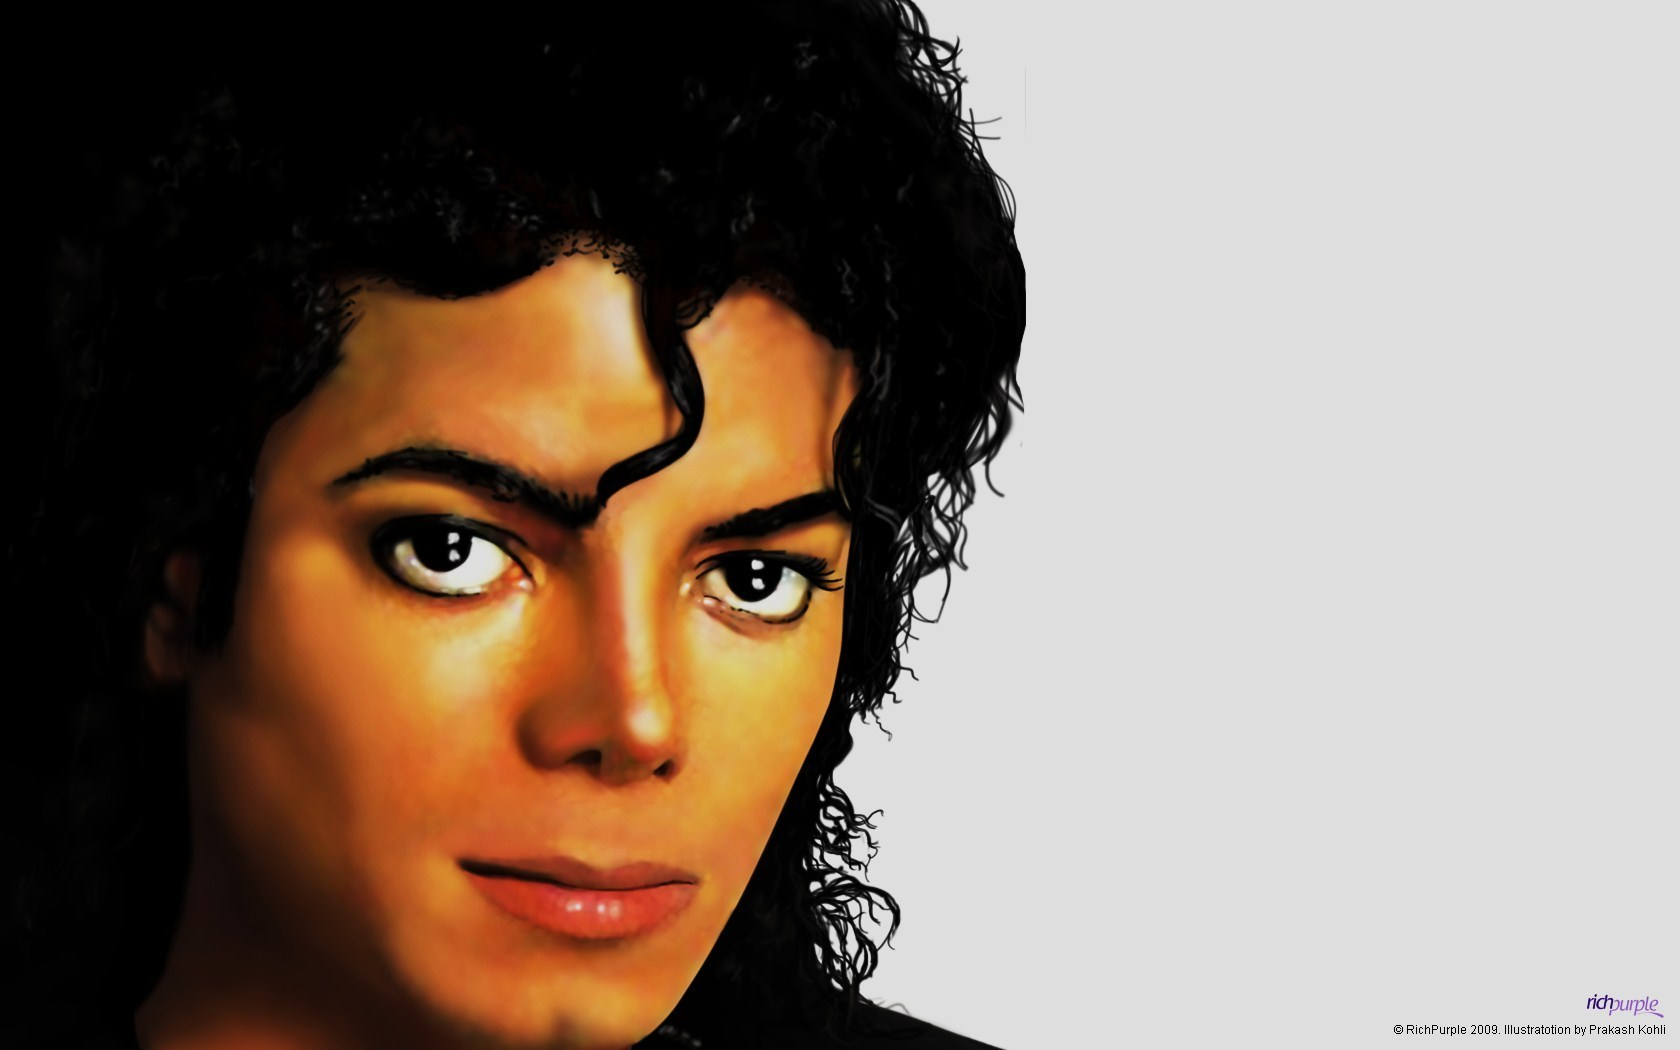 uh60207,1271352288,Michael-Jackson-the-King-of-pop-rock-and-soul-3-michael-jackson-10894322-1680-1050